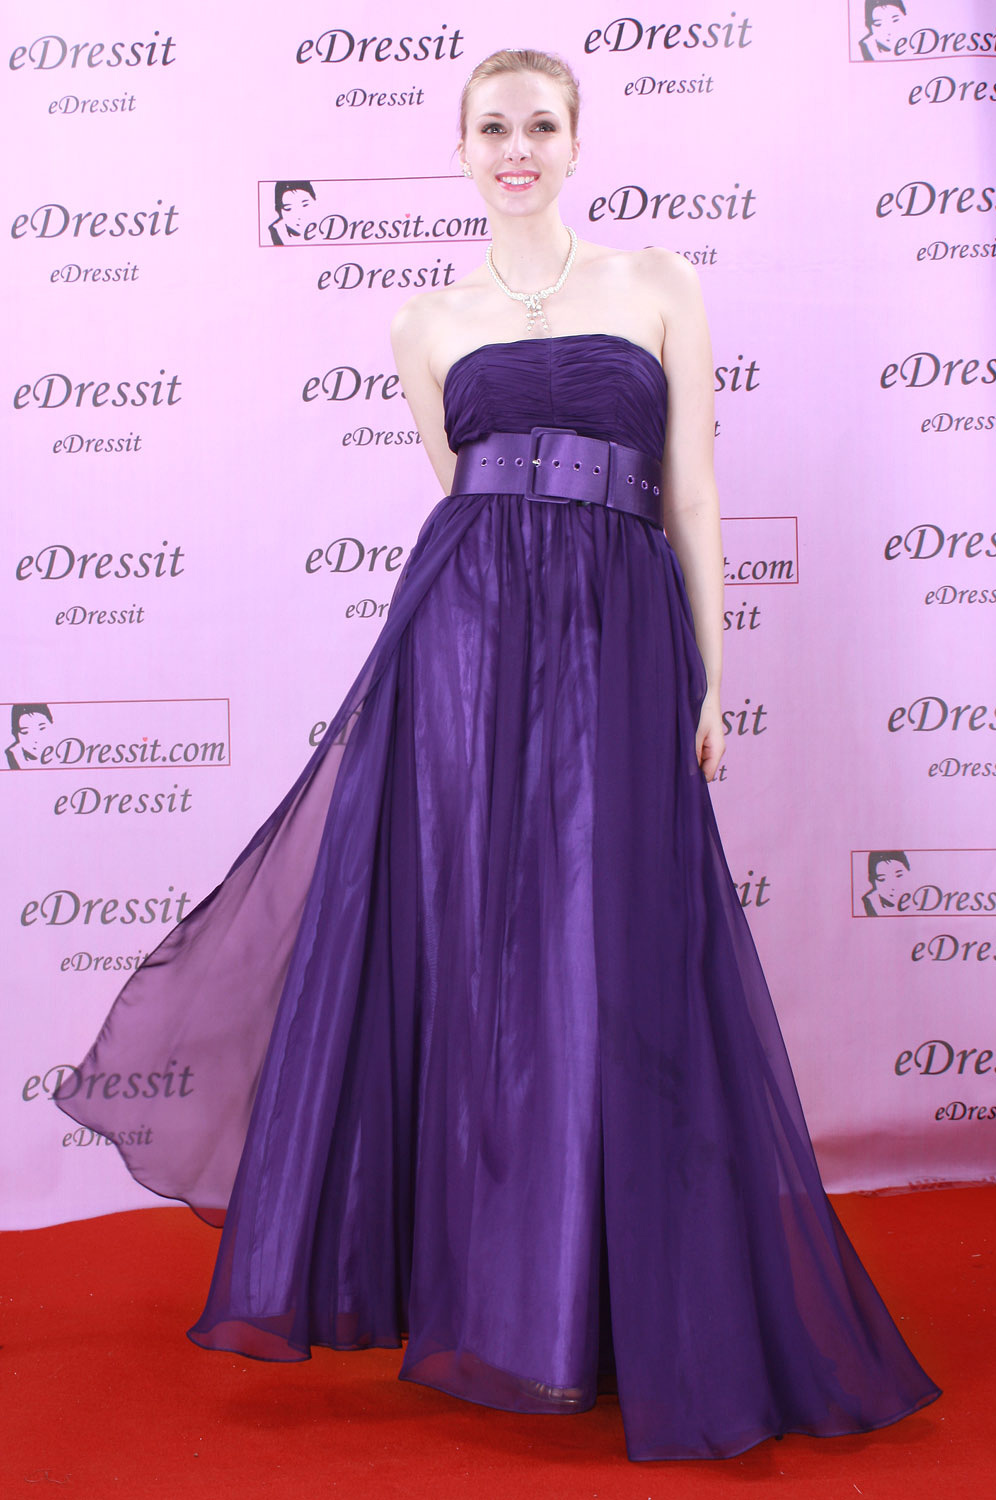 On sale !! eDressit purple Prom Gown Evening Dress (00080306e)